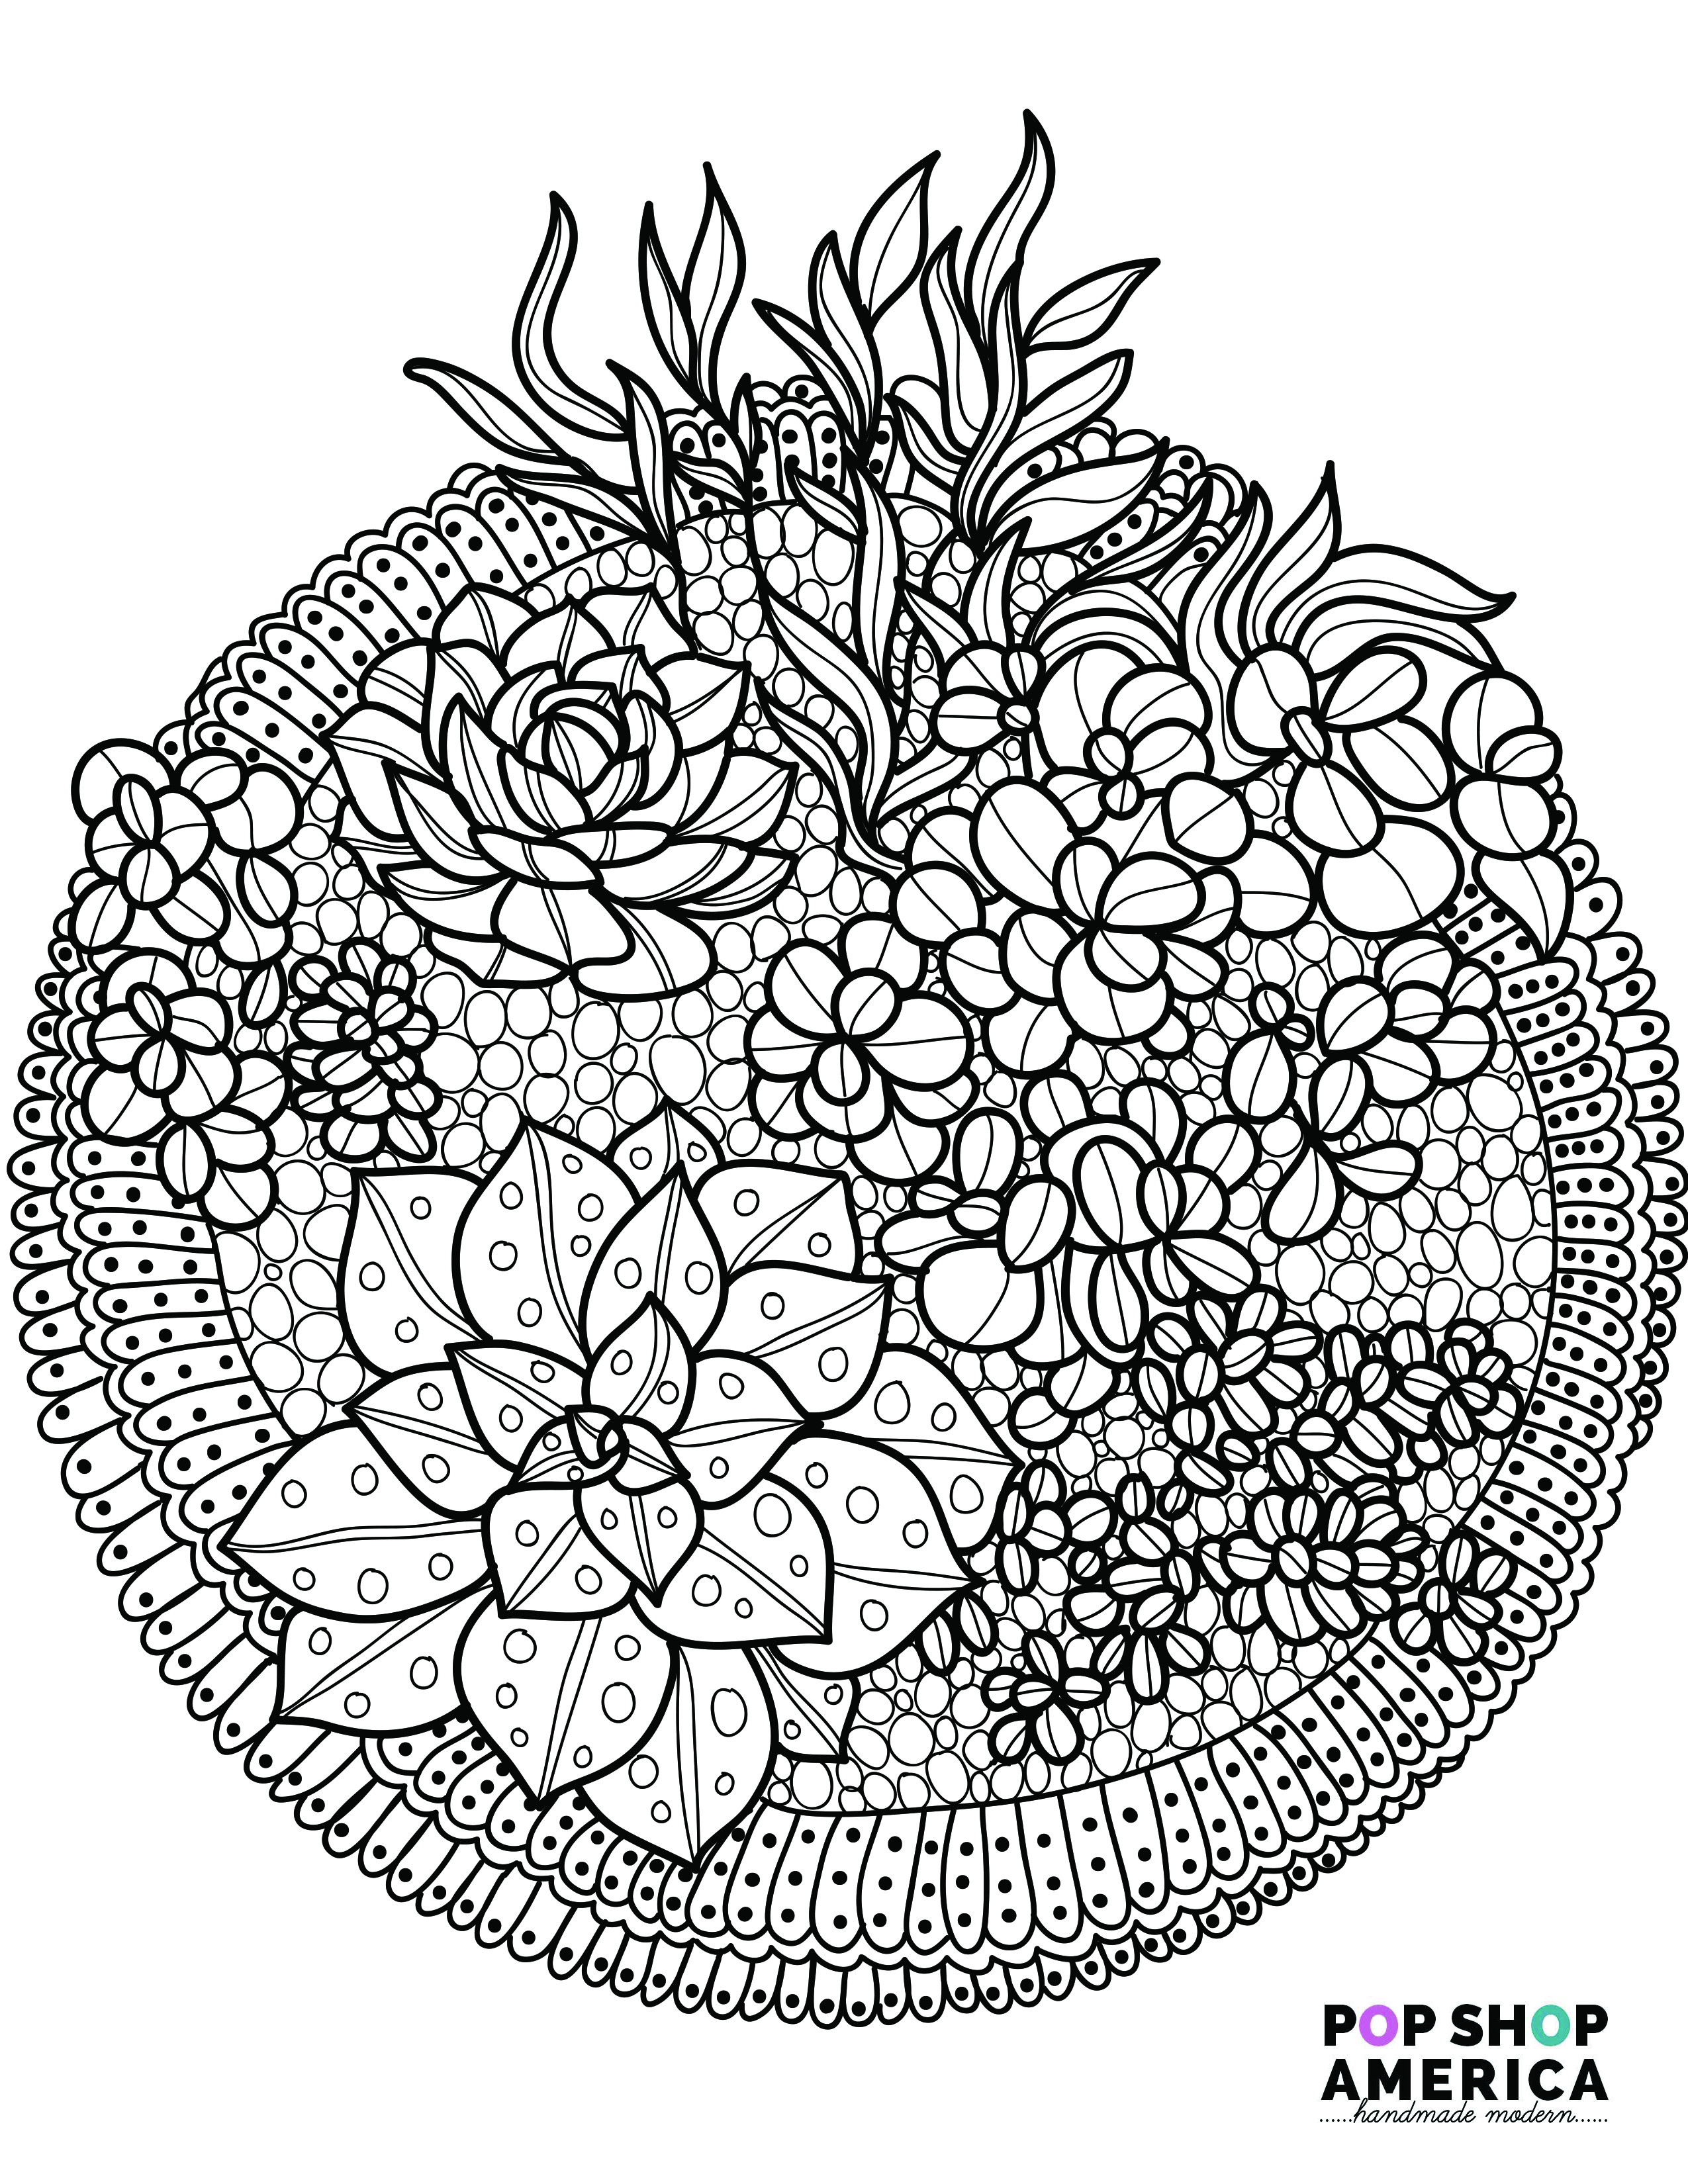 Best ideas about Coloring Books Adult . Save or Pin Free Adult Coloring Book Pages with Succulent Terrariums Now.